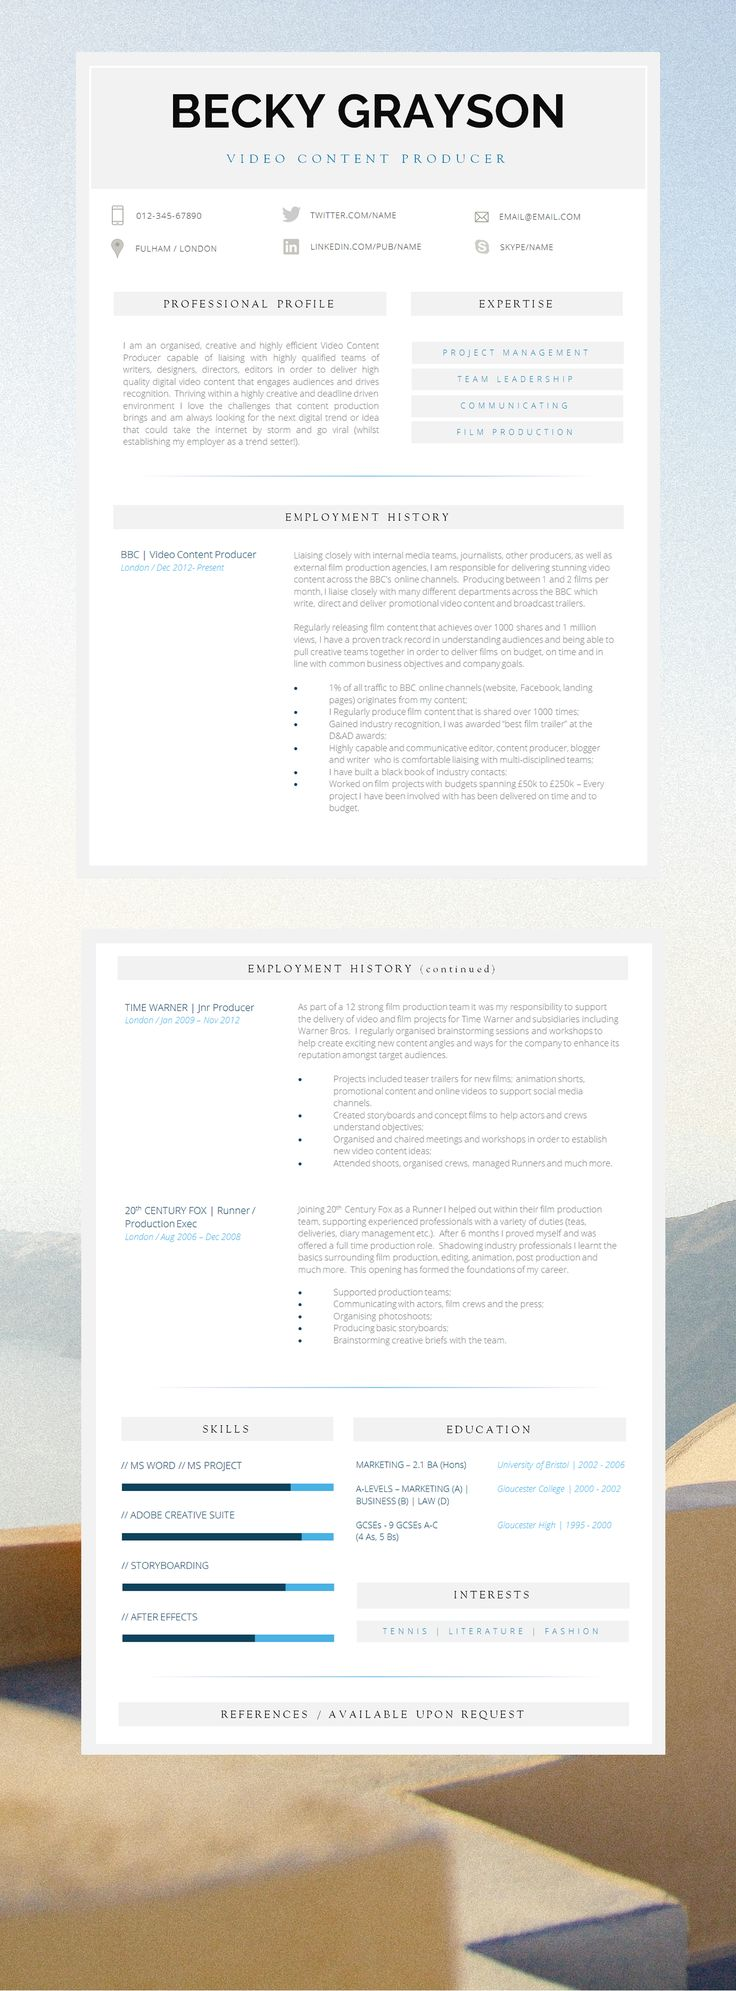 Great Layout | Professional Resume Template | 2 Page Resume Template - Must Get! #Resume #CV